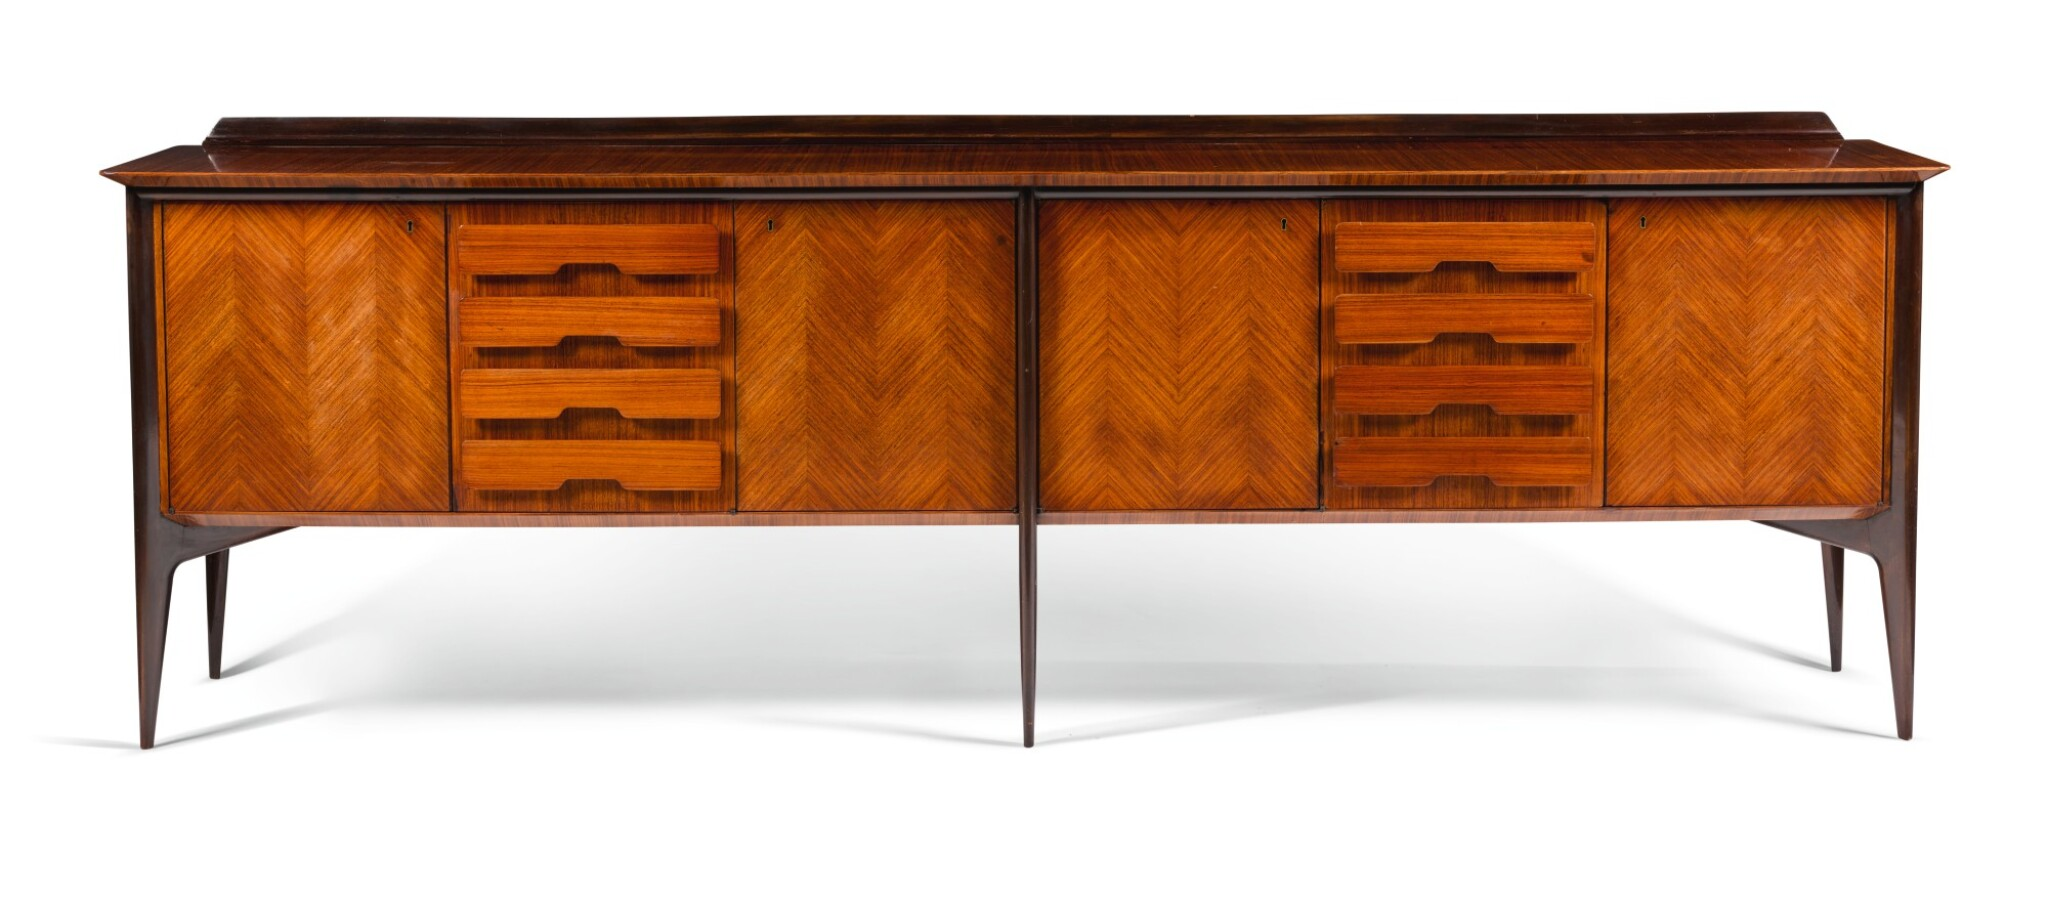 View full screen - View 1 of Lot 10. ICO PARISI |SIDEBOARD.